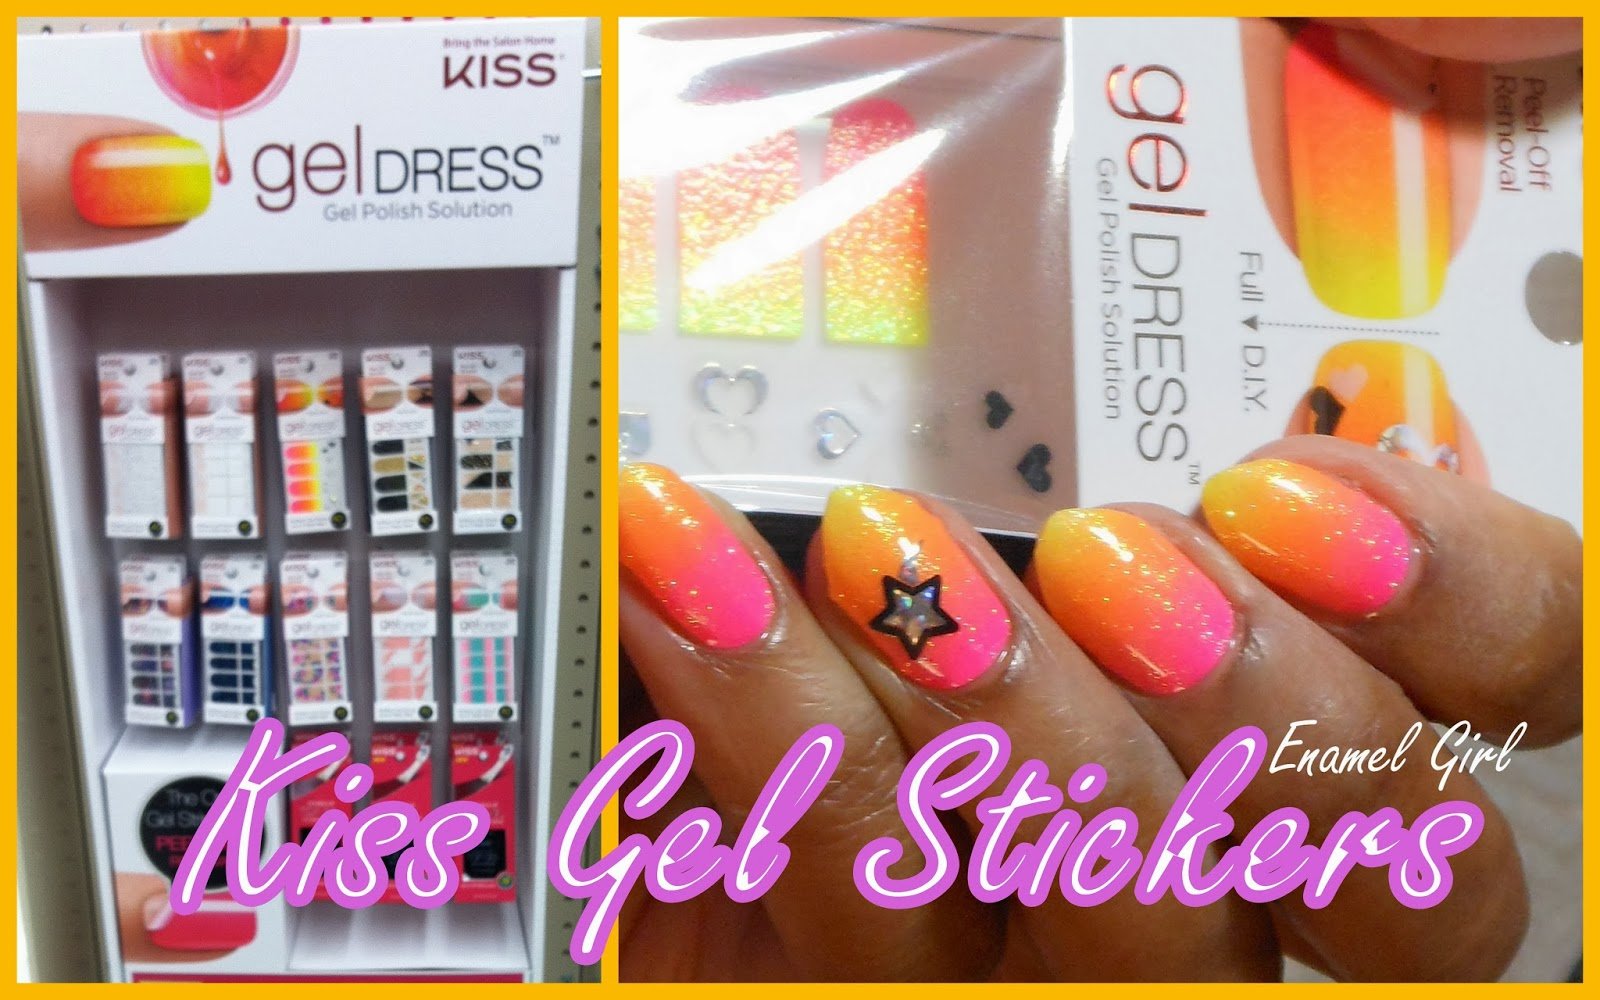 Enamel Girl: Kiss Gel Dress Nail Stickers - Swatches and Review